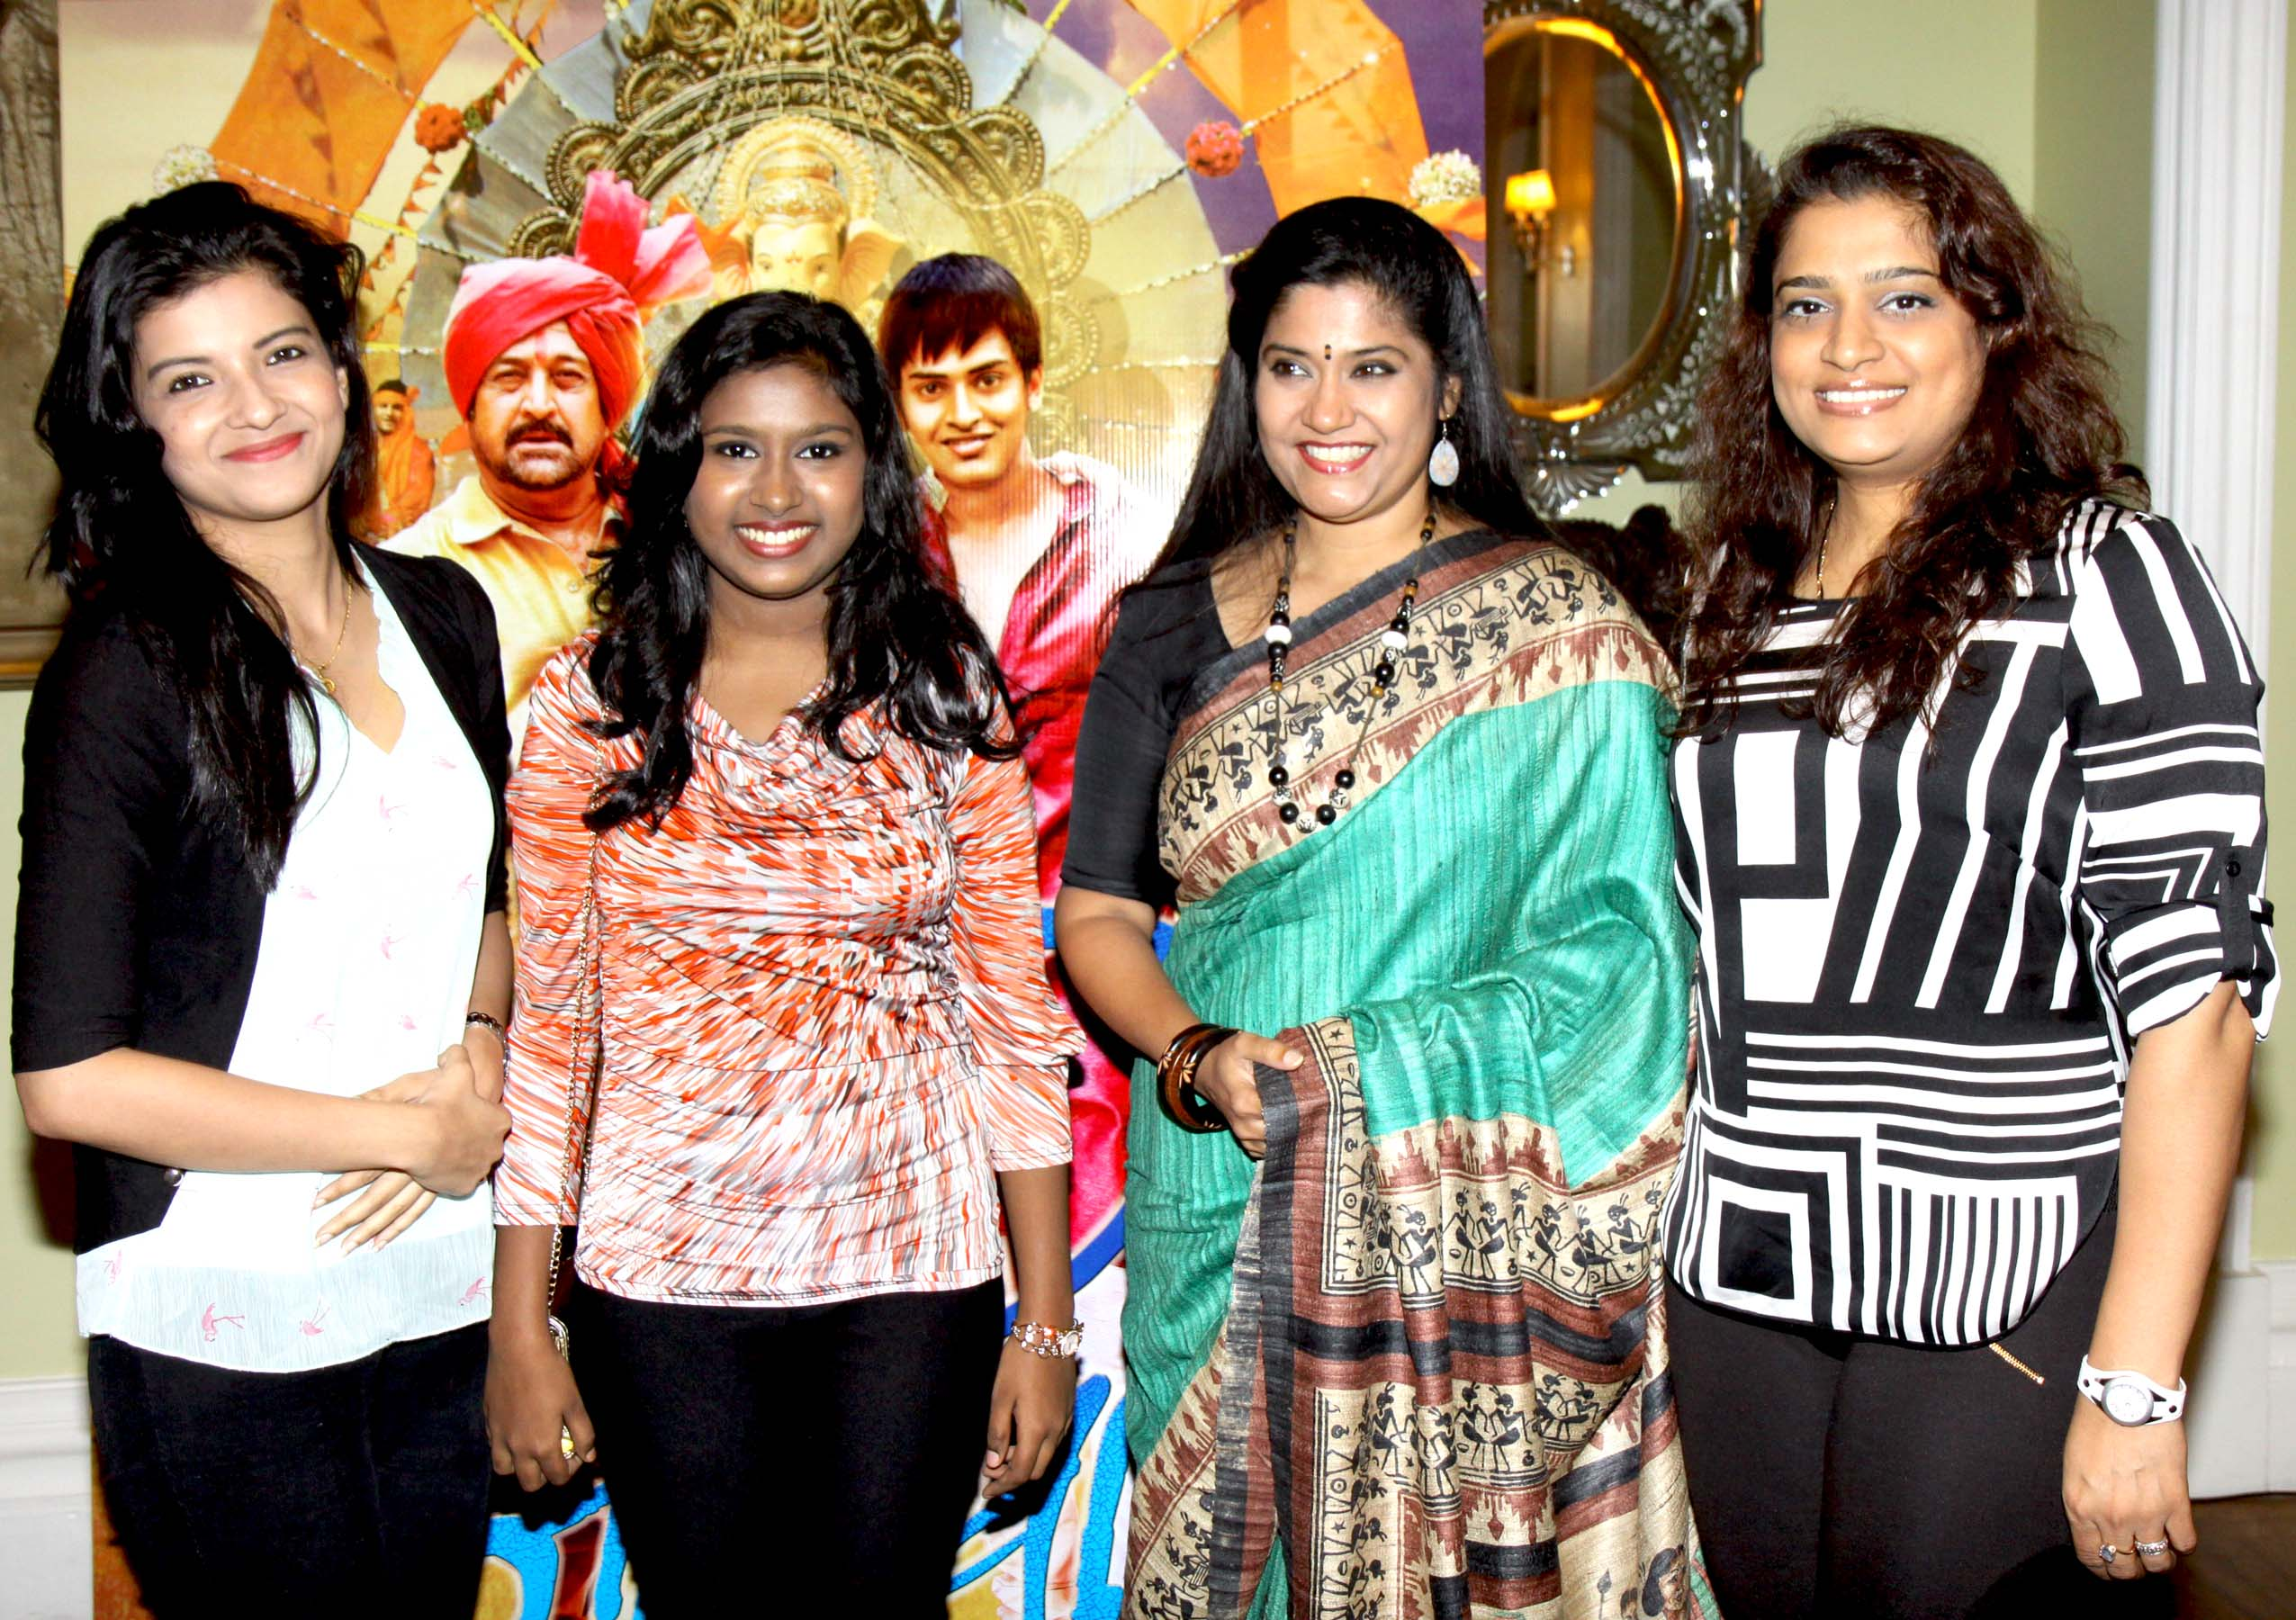 Bolly wood stars at scholarship event of Tata Memorial hospital